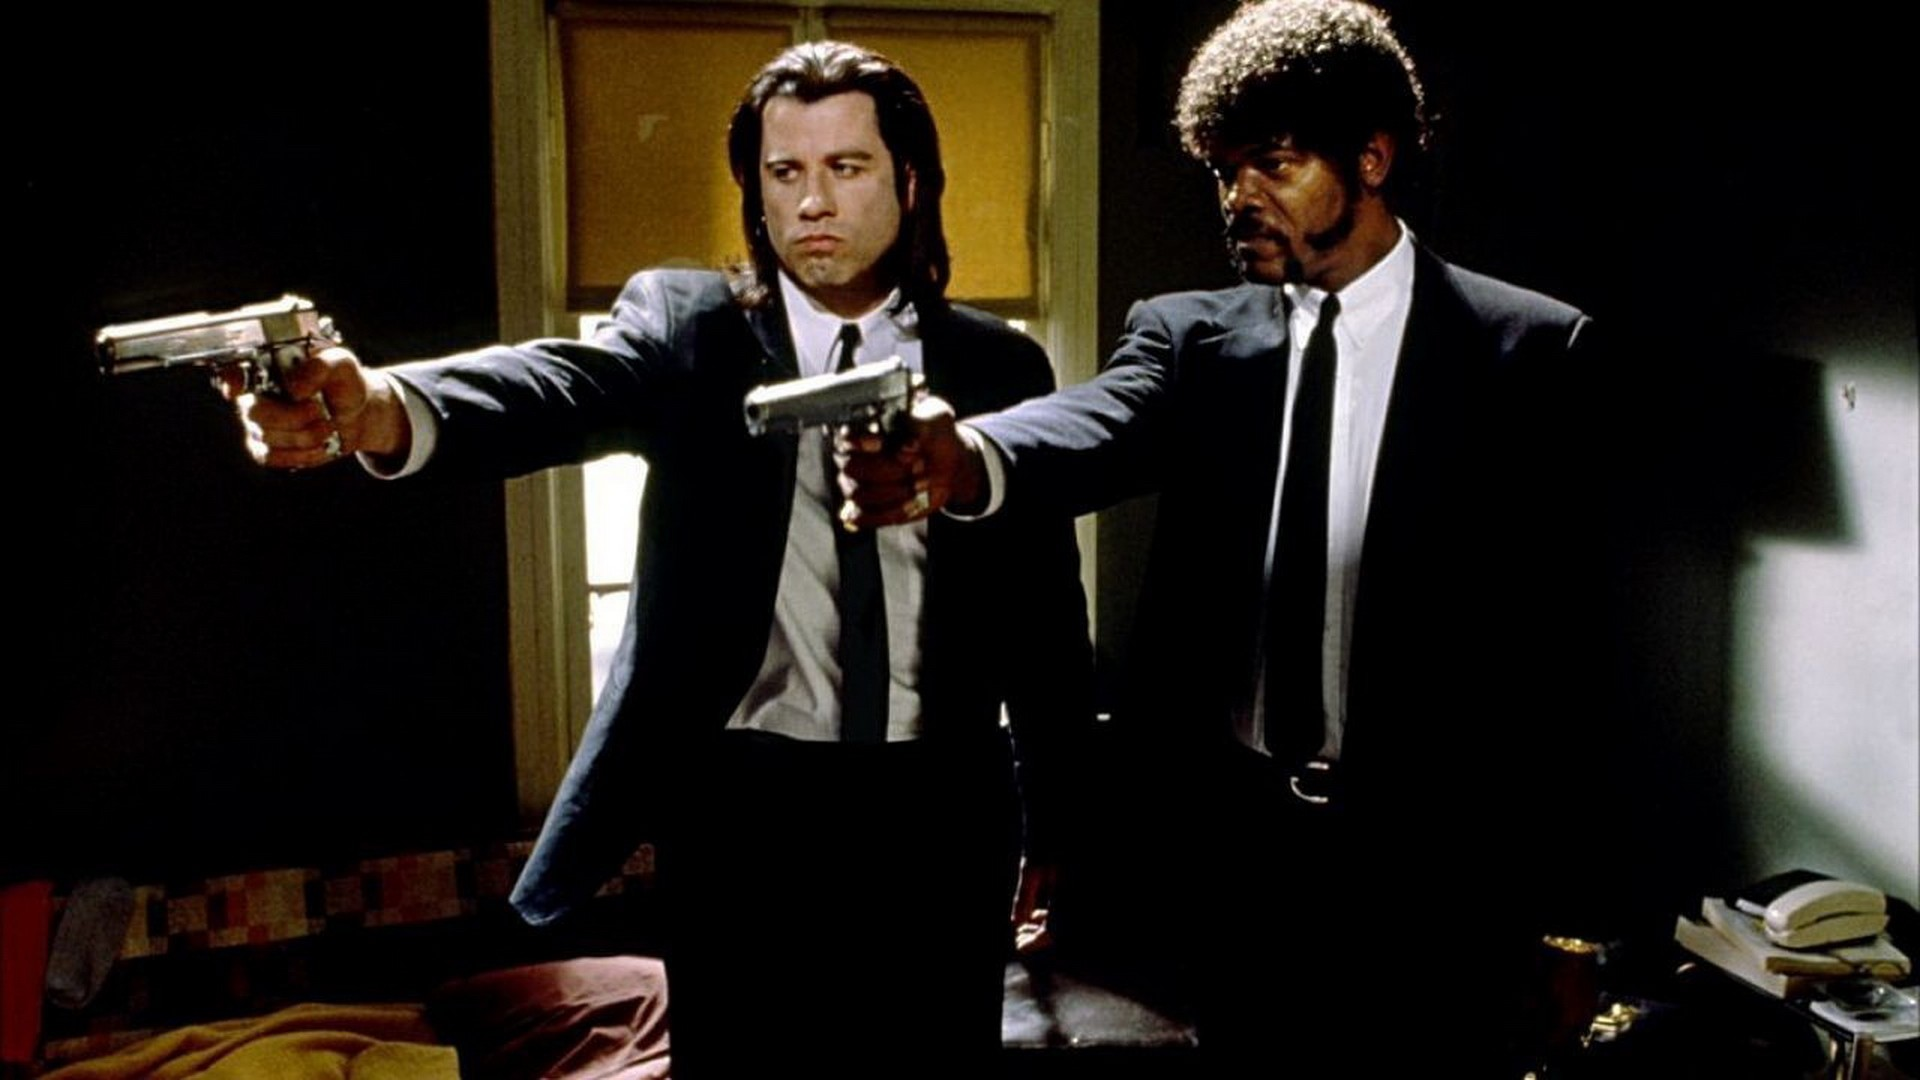 Pulp Fiction Wallpaper 1 Download Free Full HD Wallpapers For